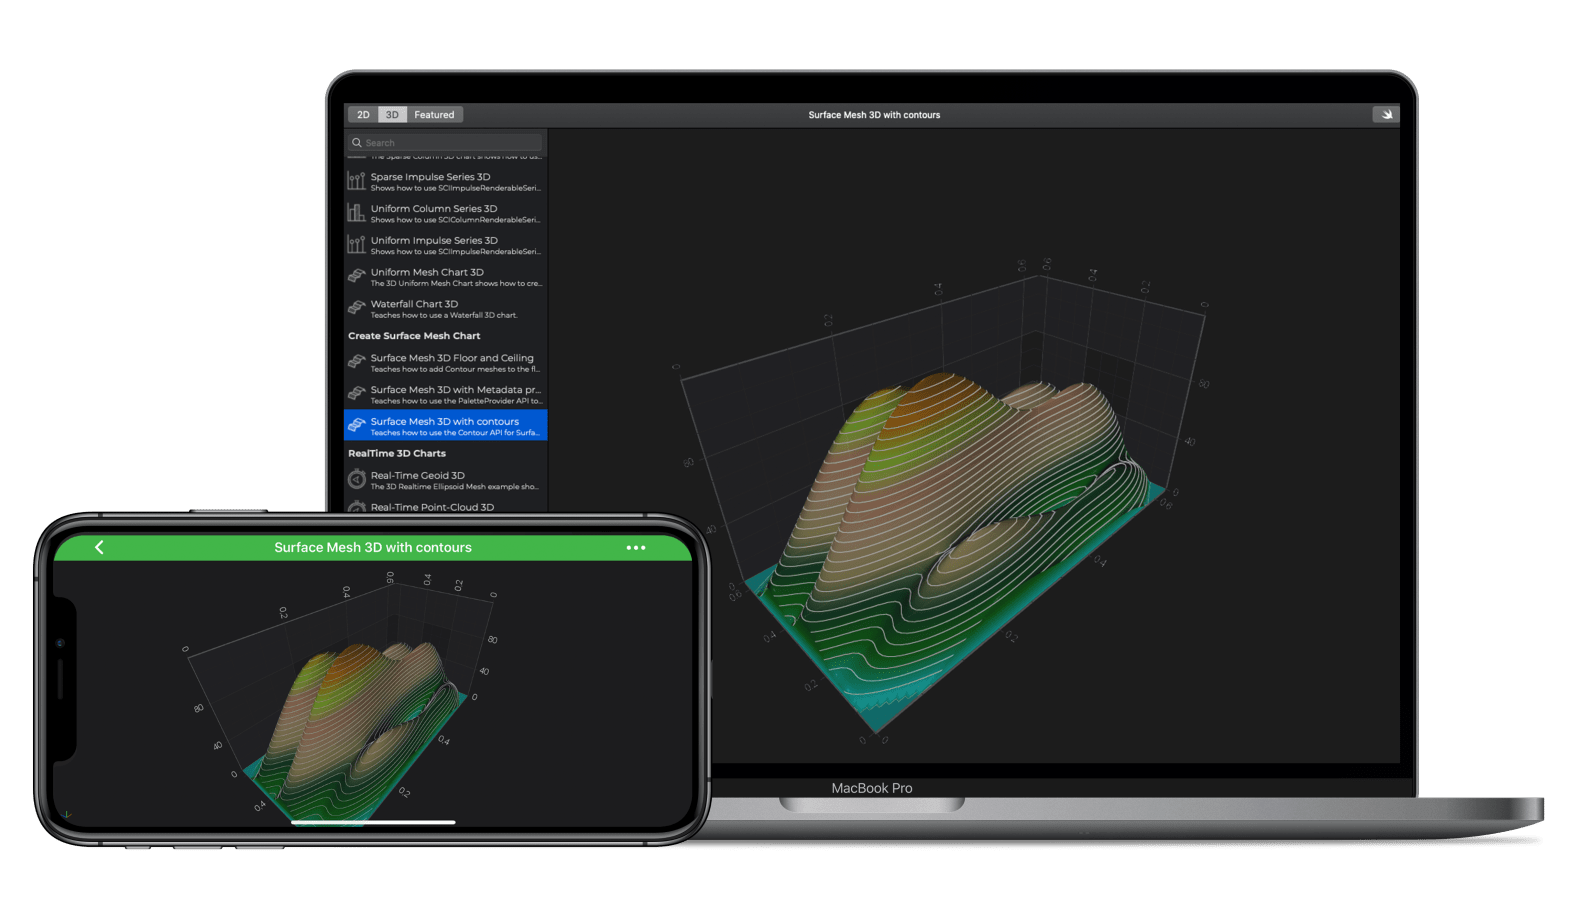 iOS & macOS  Surface Mesh  With Contours 3D Chart